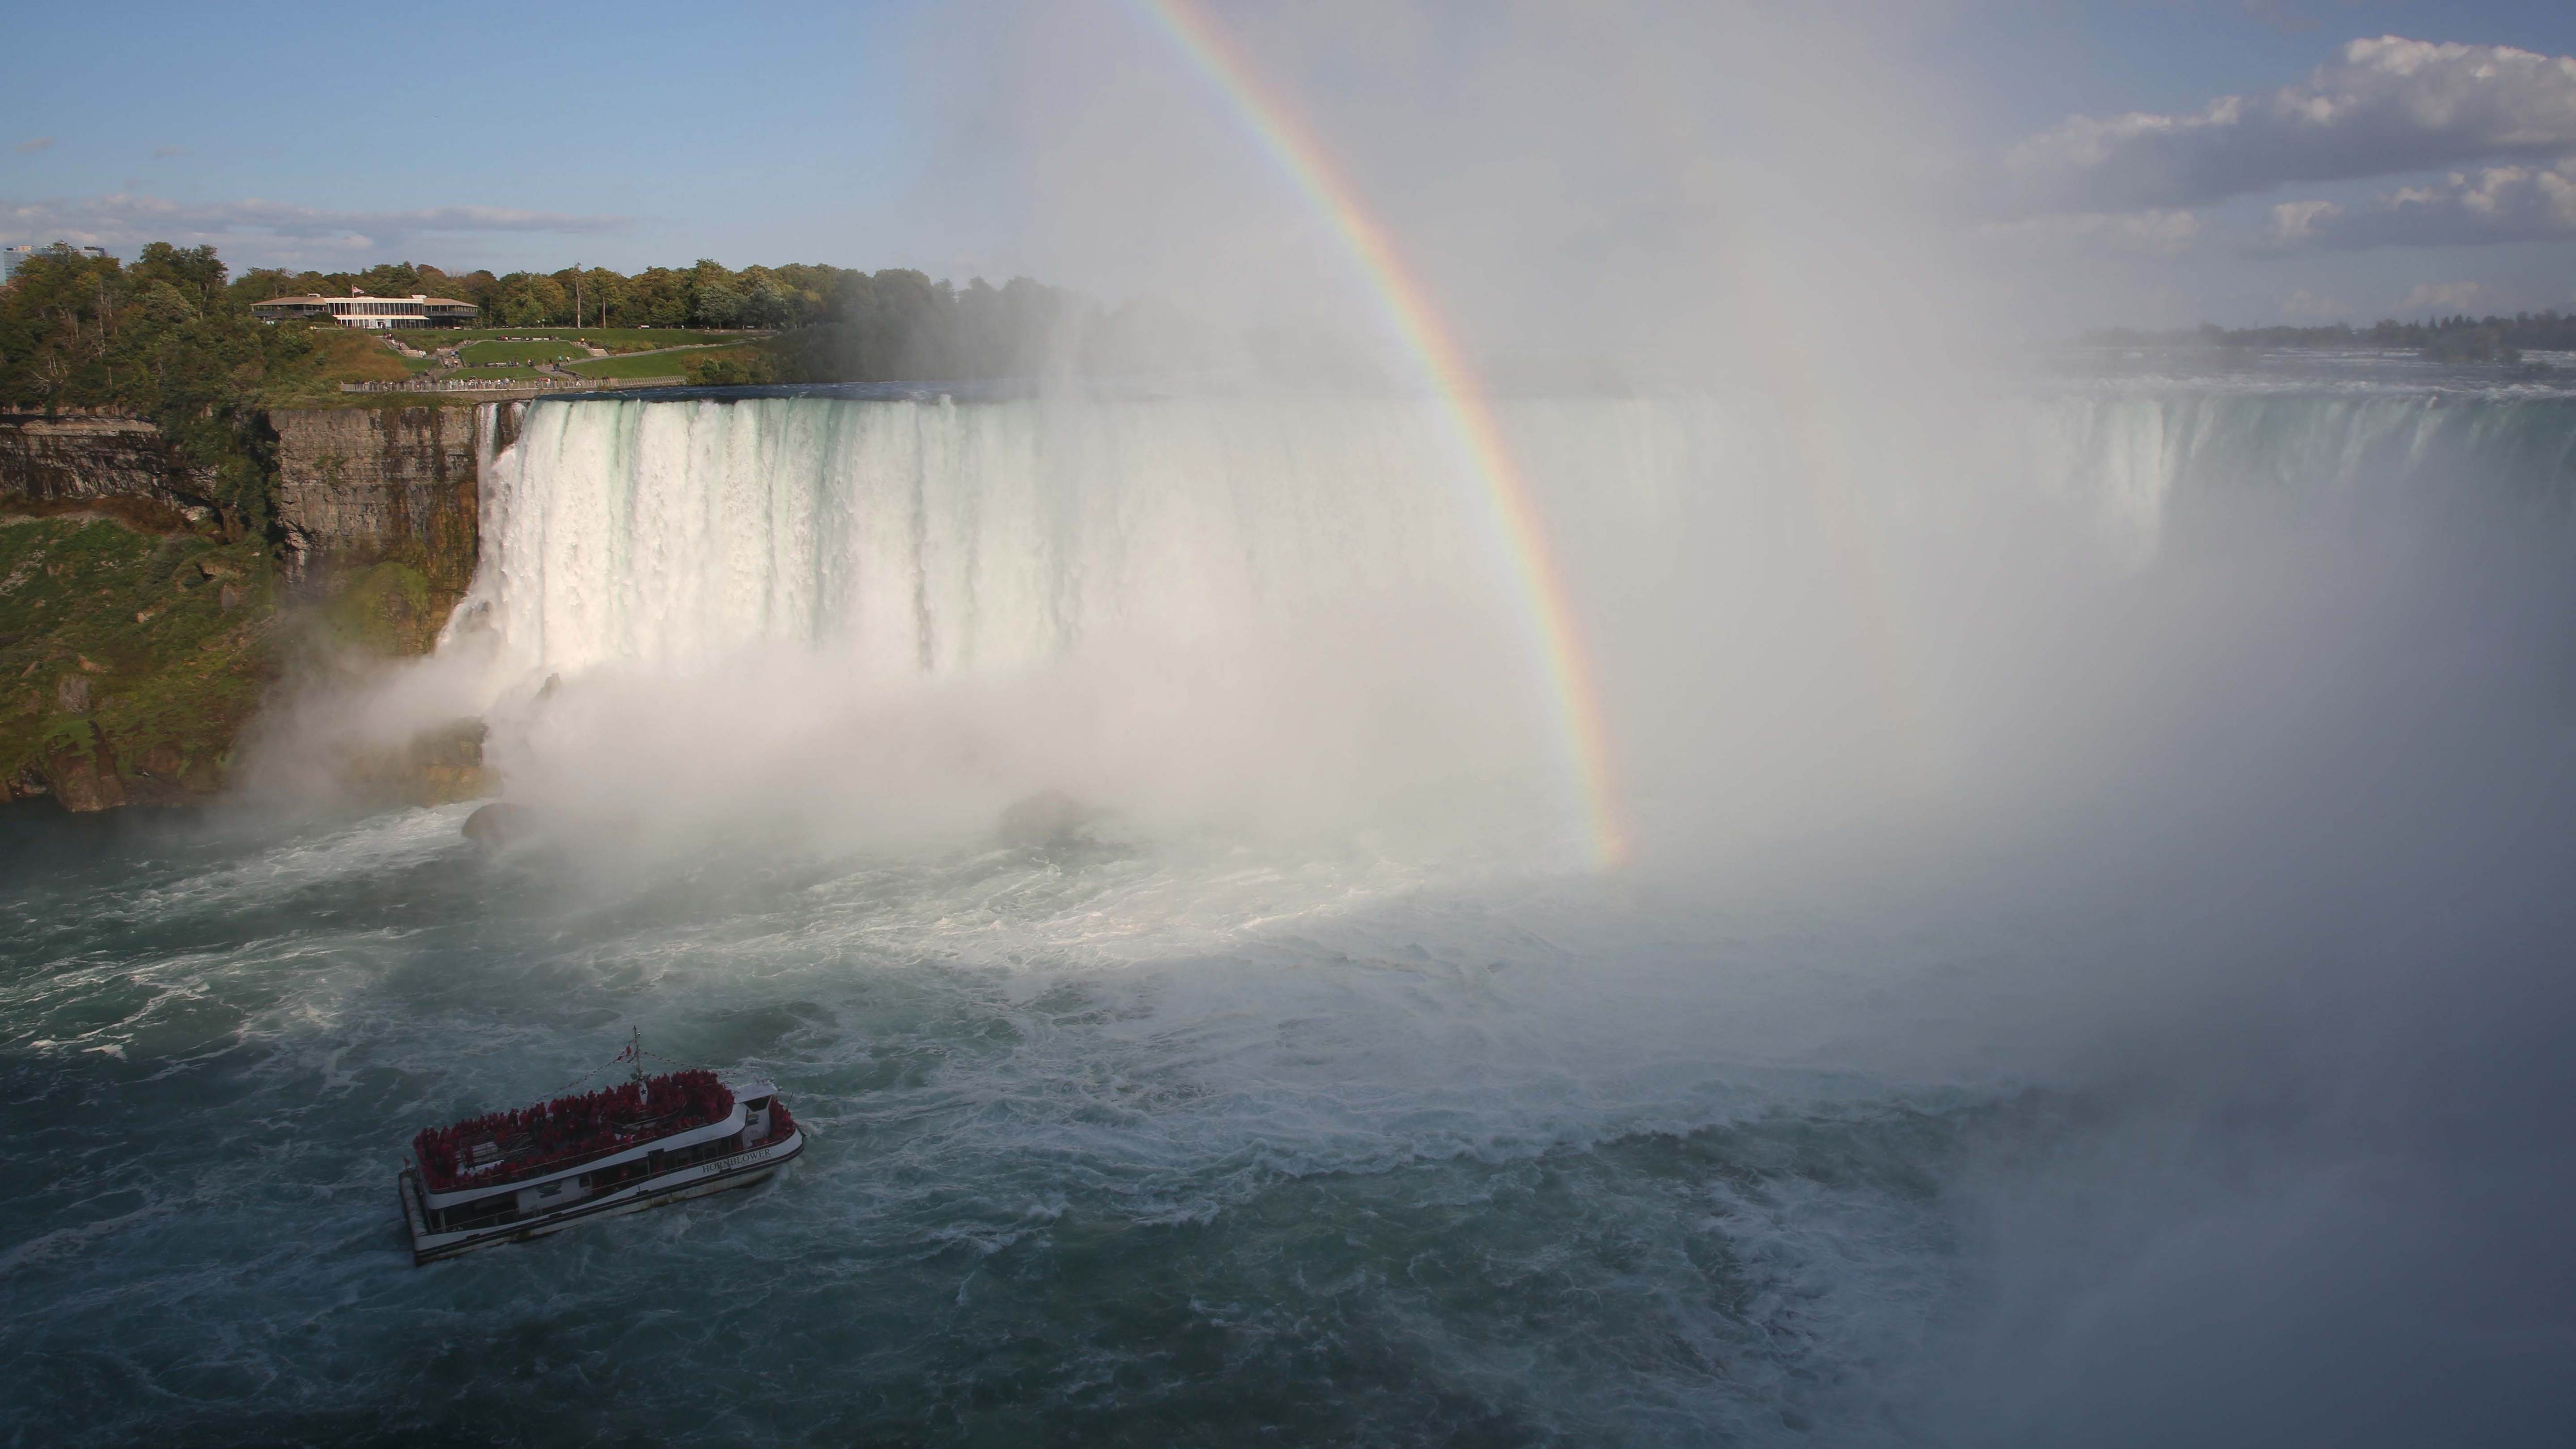 A boat operated by Hornblower Niagara Cruises ventures to the edge of Horseshoe Falls.